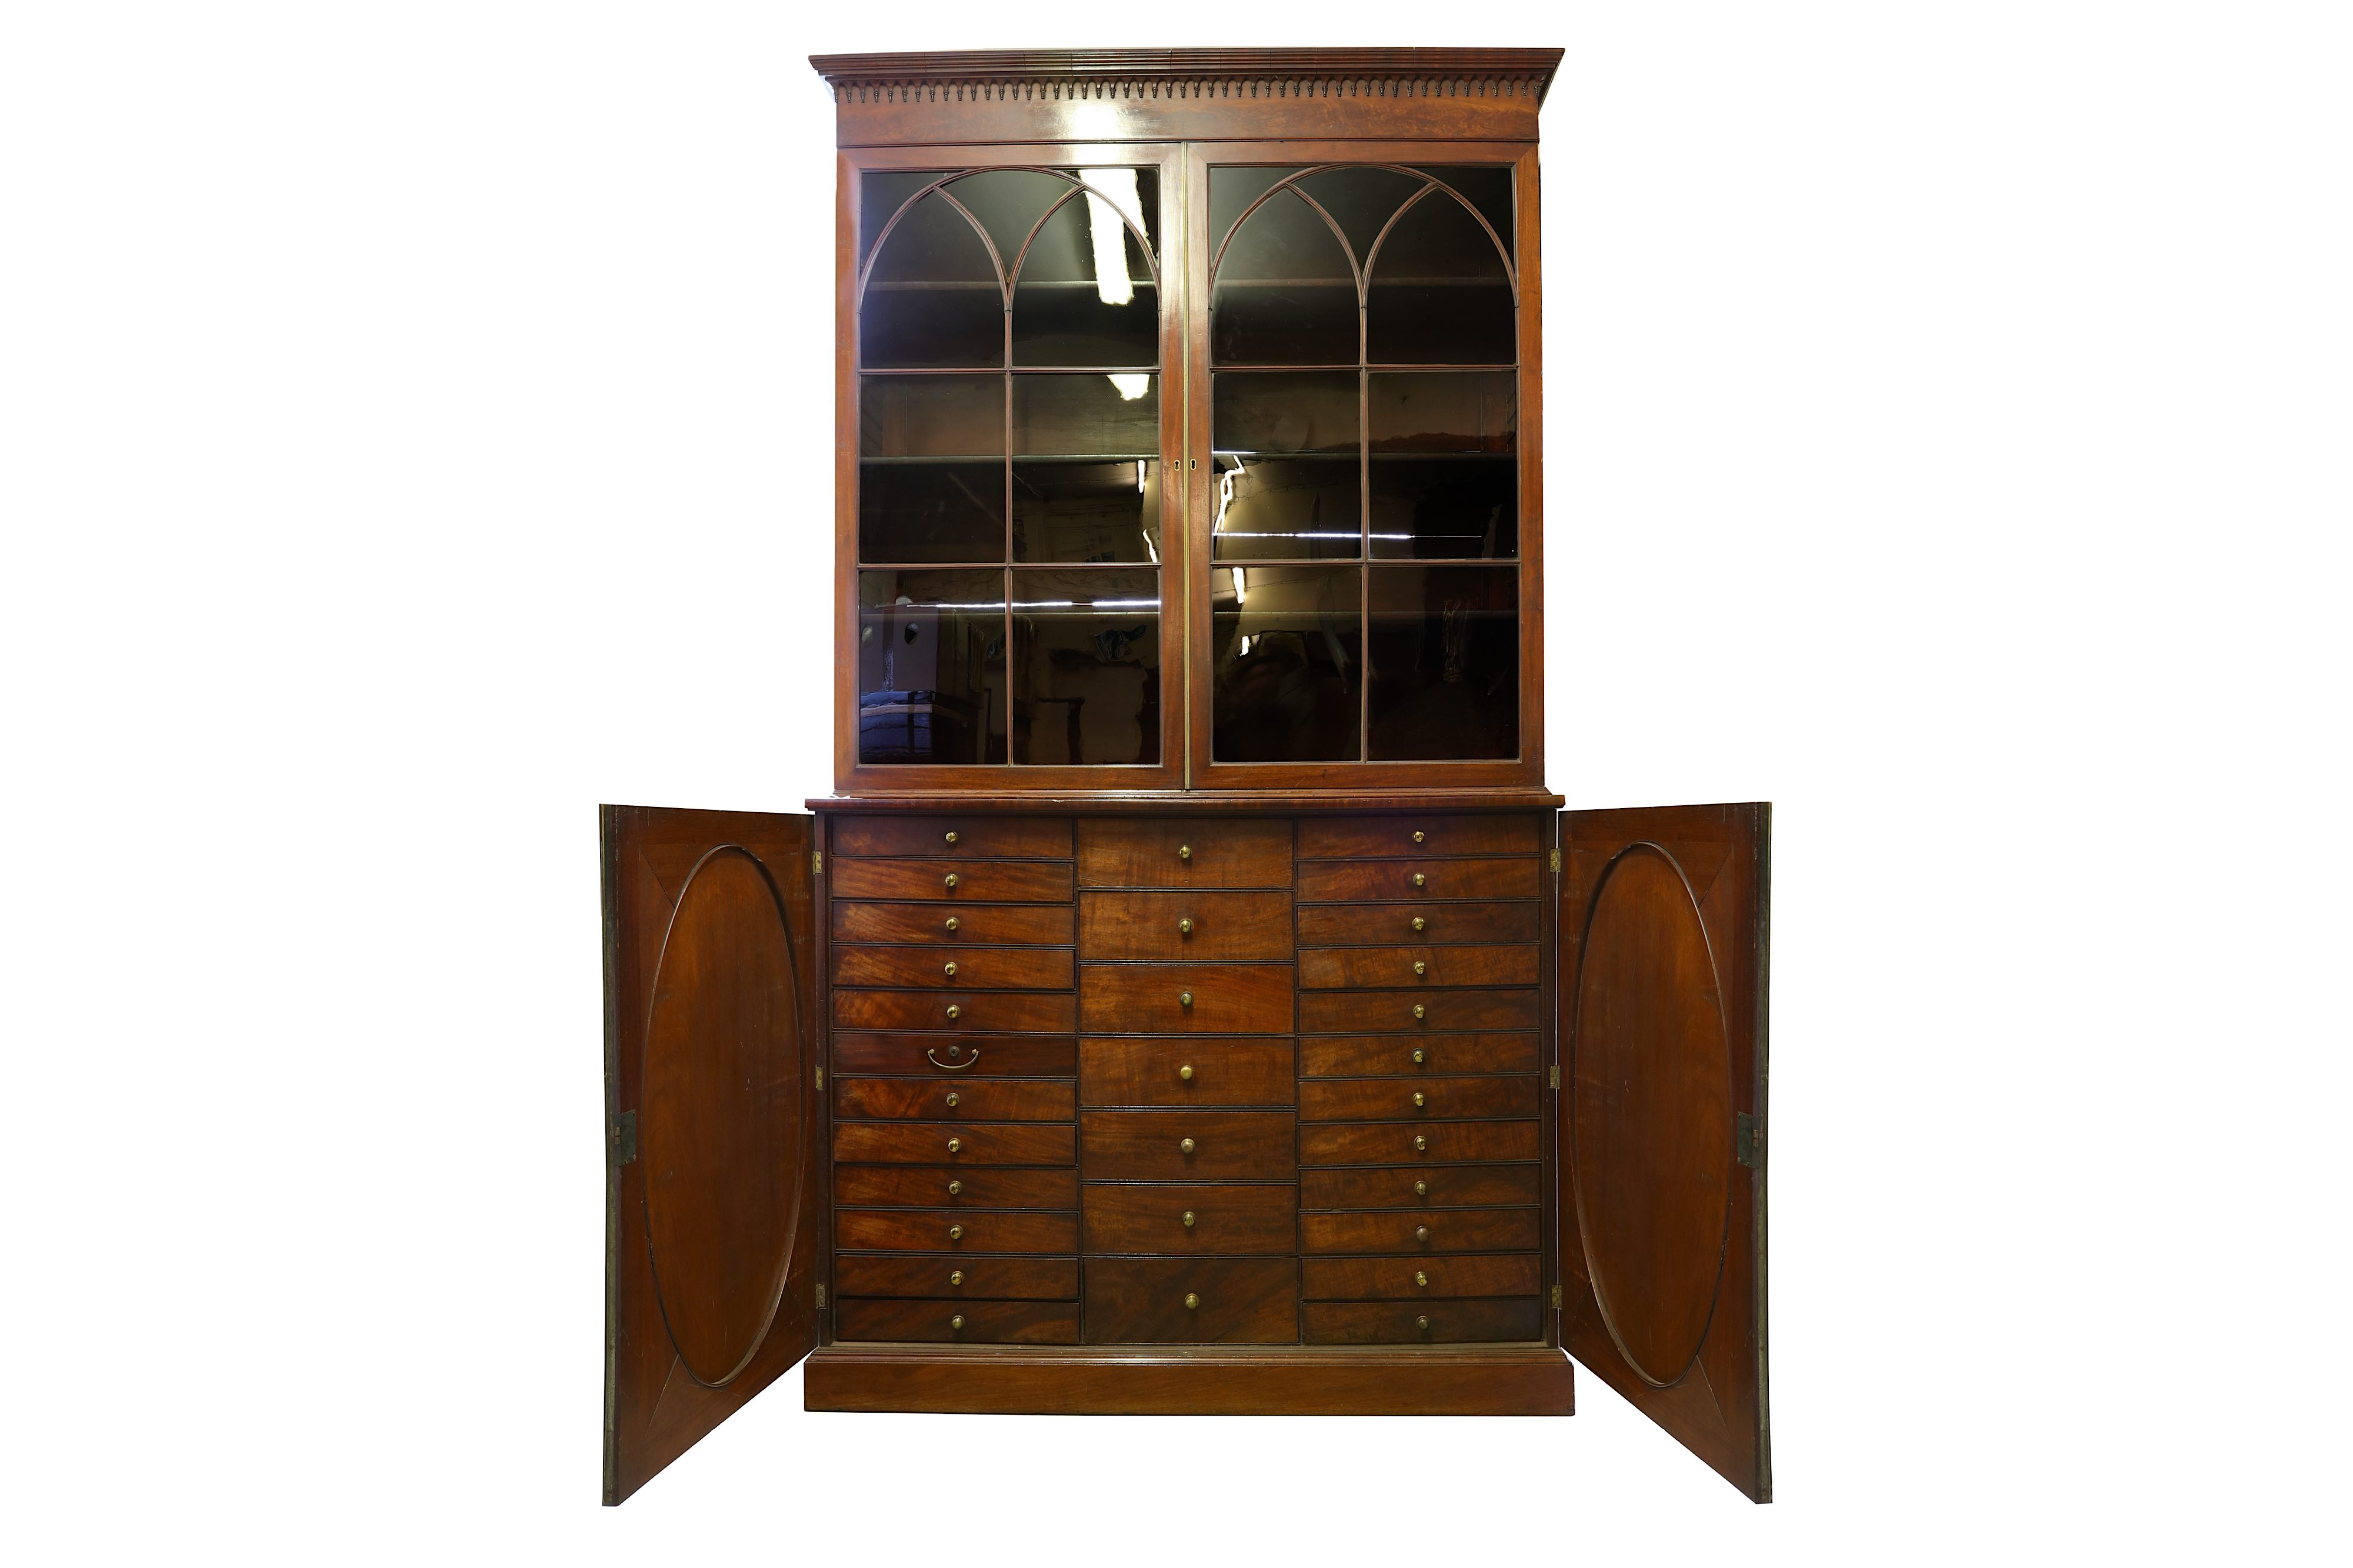 Lot 21 - A GEORGE III MAHOGANY COLLECTOR'S CABINET, CIRCA 1810